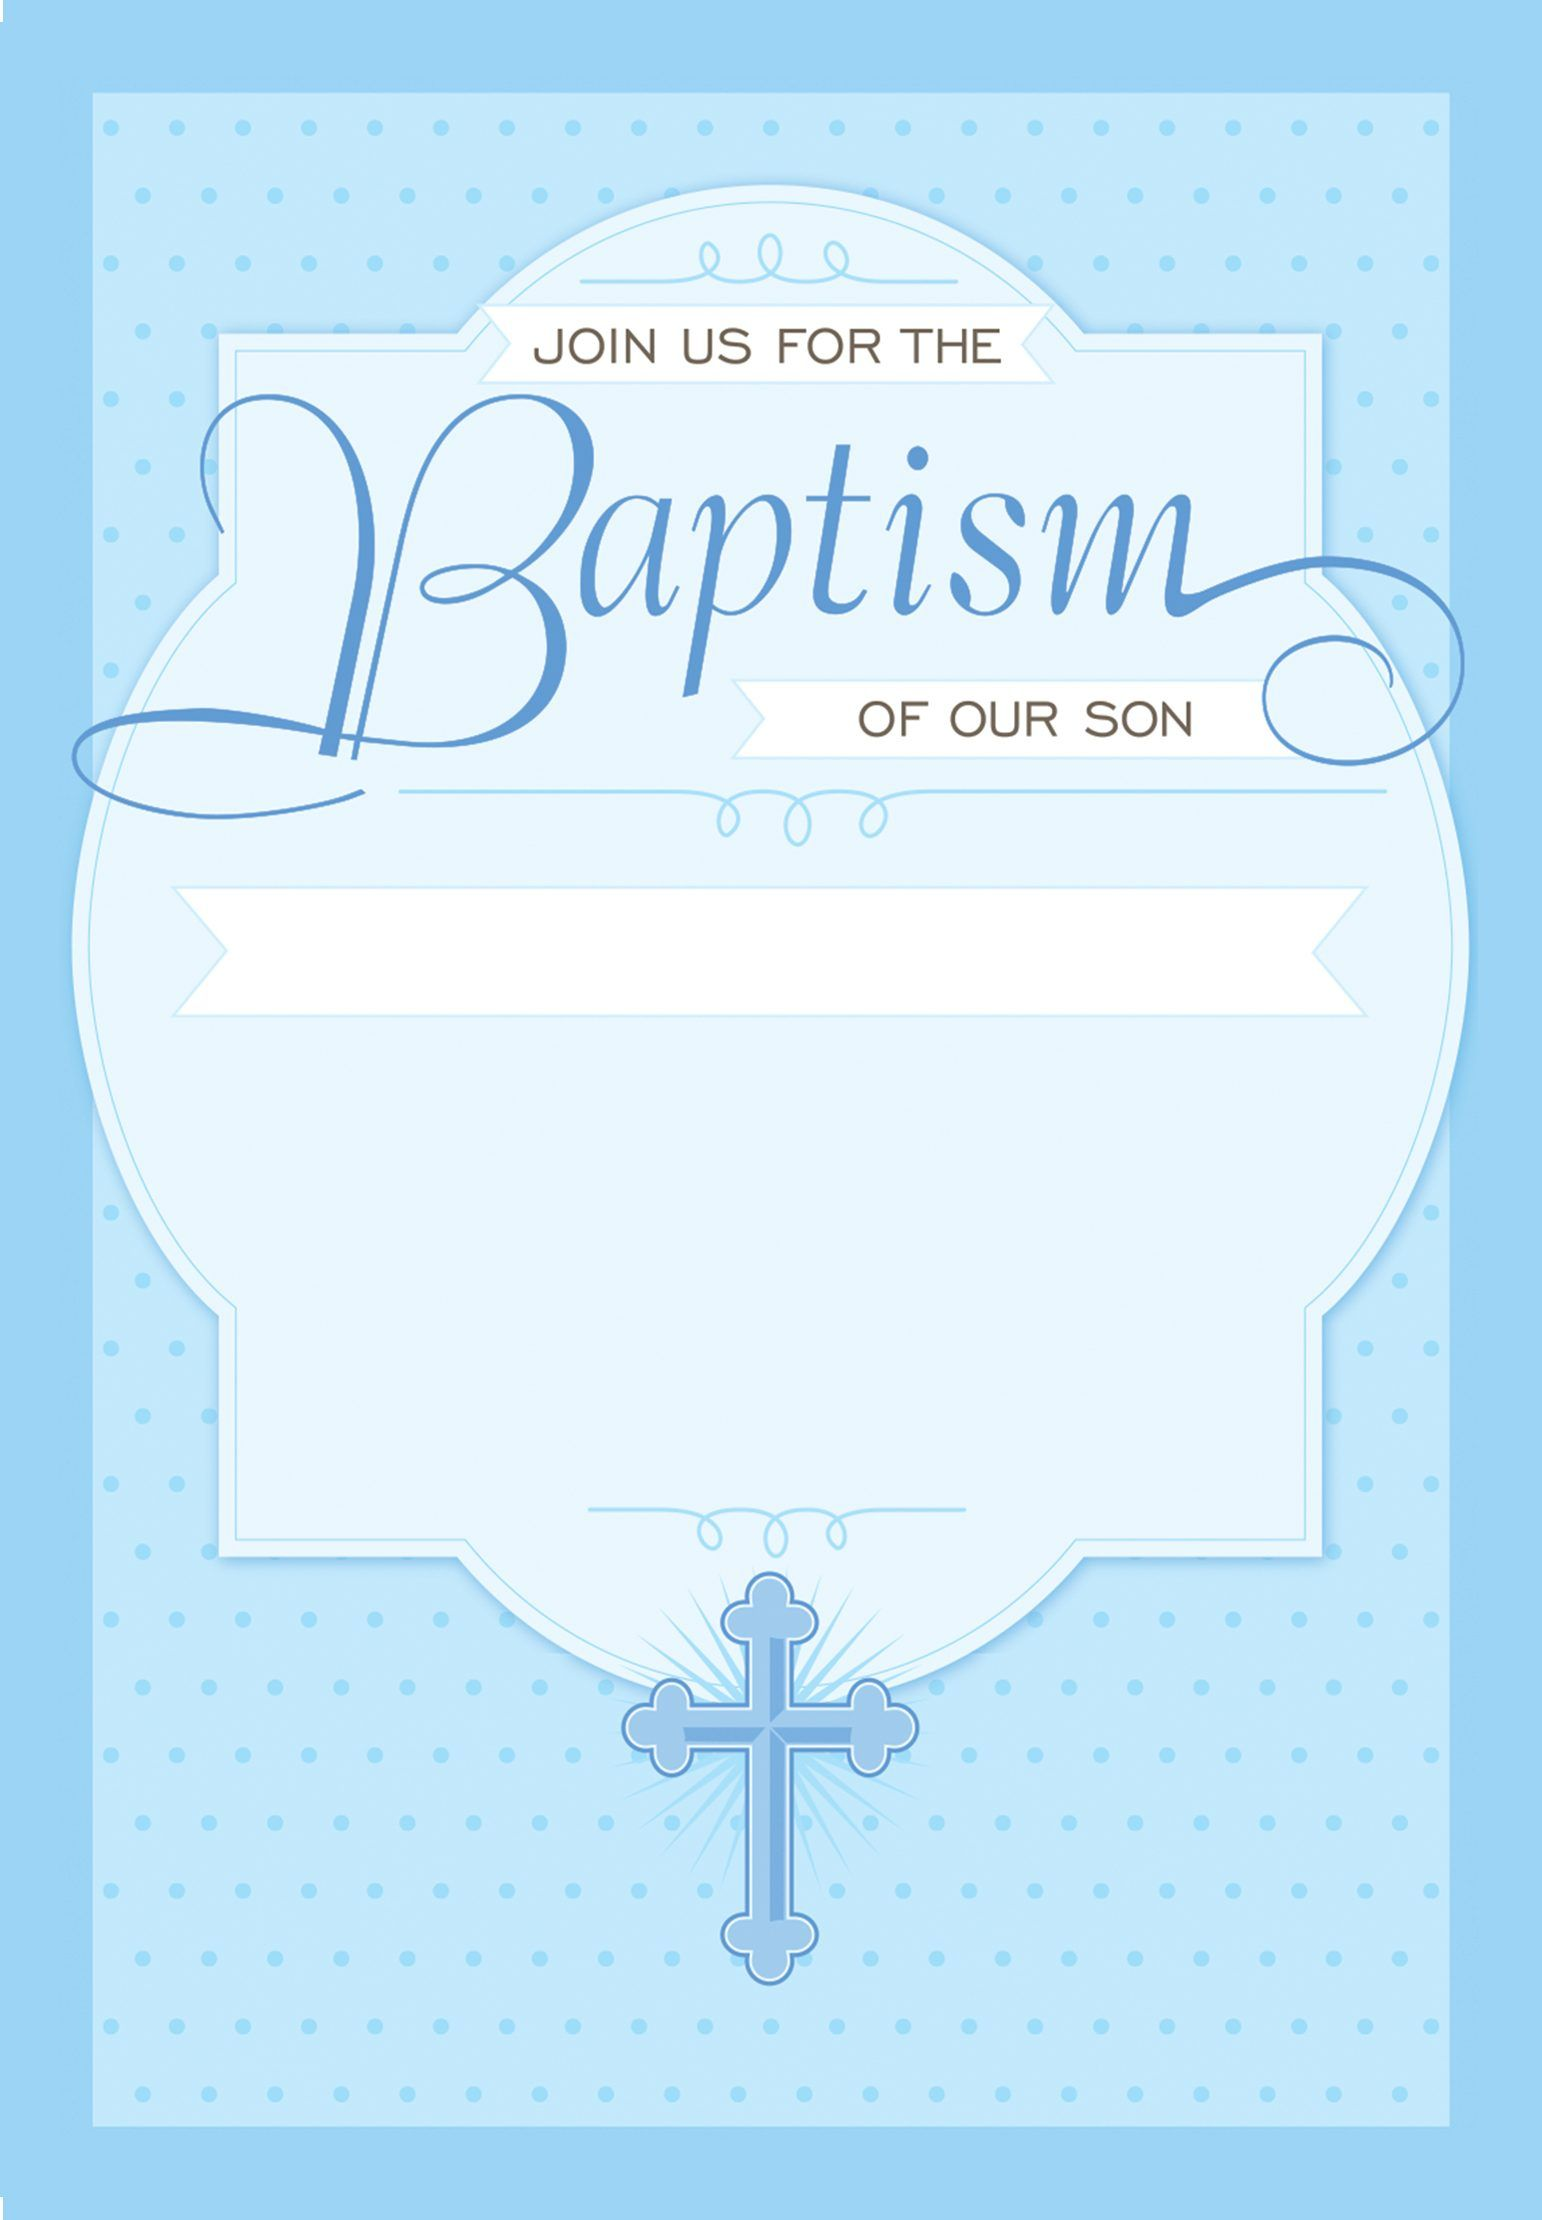 Christening Invitation Blank Template for Baby Boy Beautiful